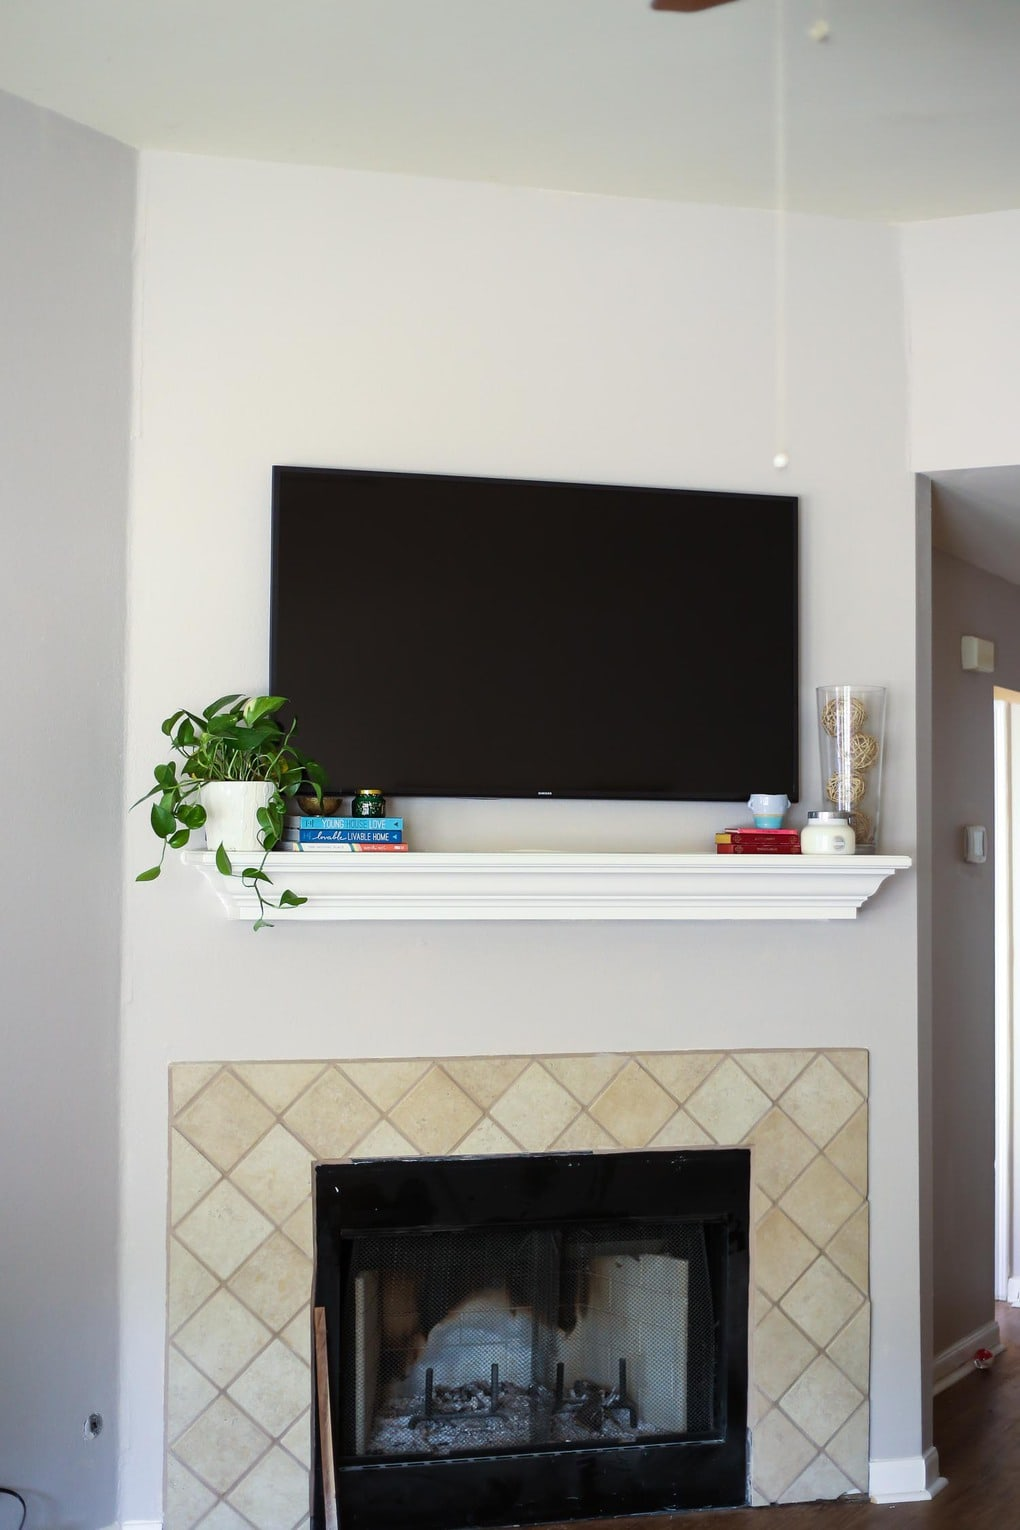 7 Tips For Decorating A Mantel With A Television Love Renovations